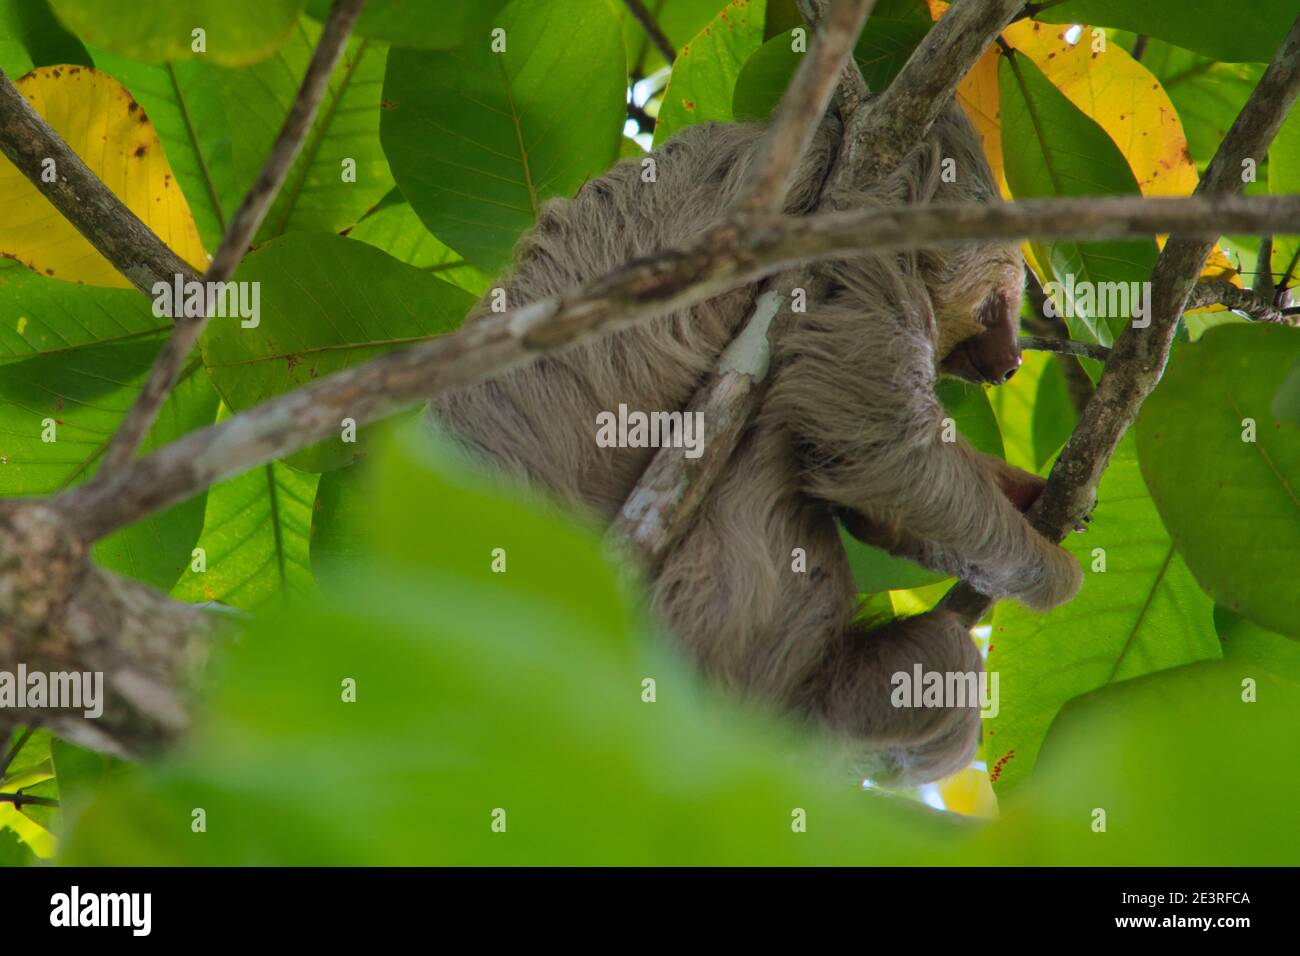 sloth climbing on a tree in costa rica Stock Photo